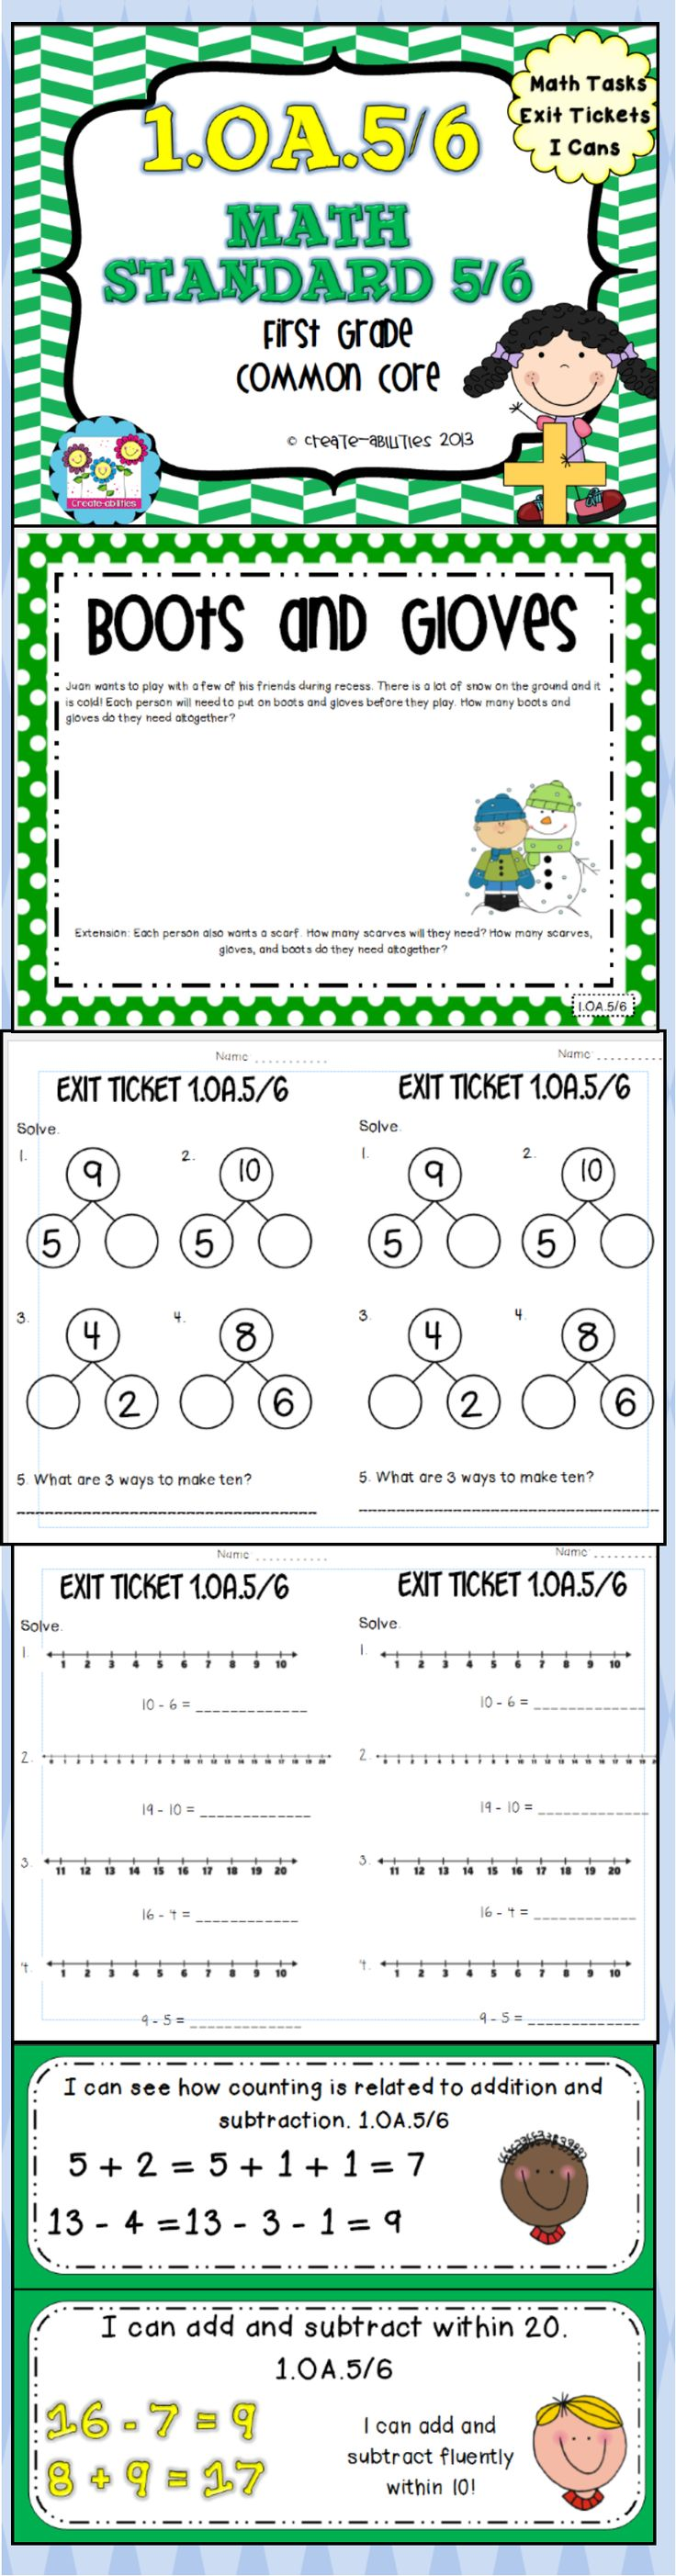 addition and subtraction math tasks and exit tickets the o 39 jays math and exit tickets. Black Bedroom Furniture Sets. Home Design Ideas